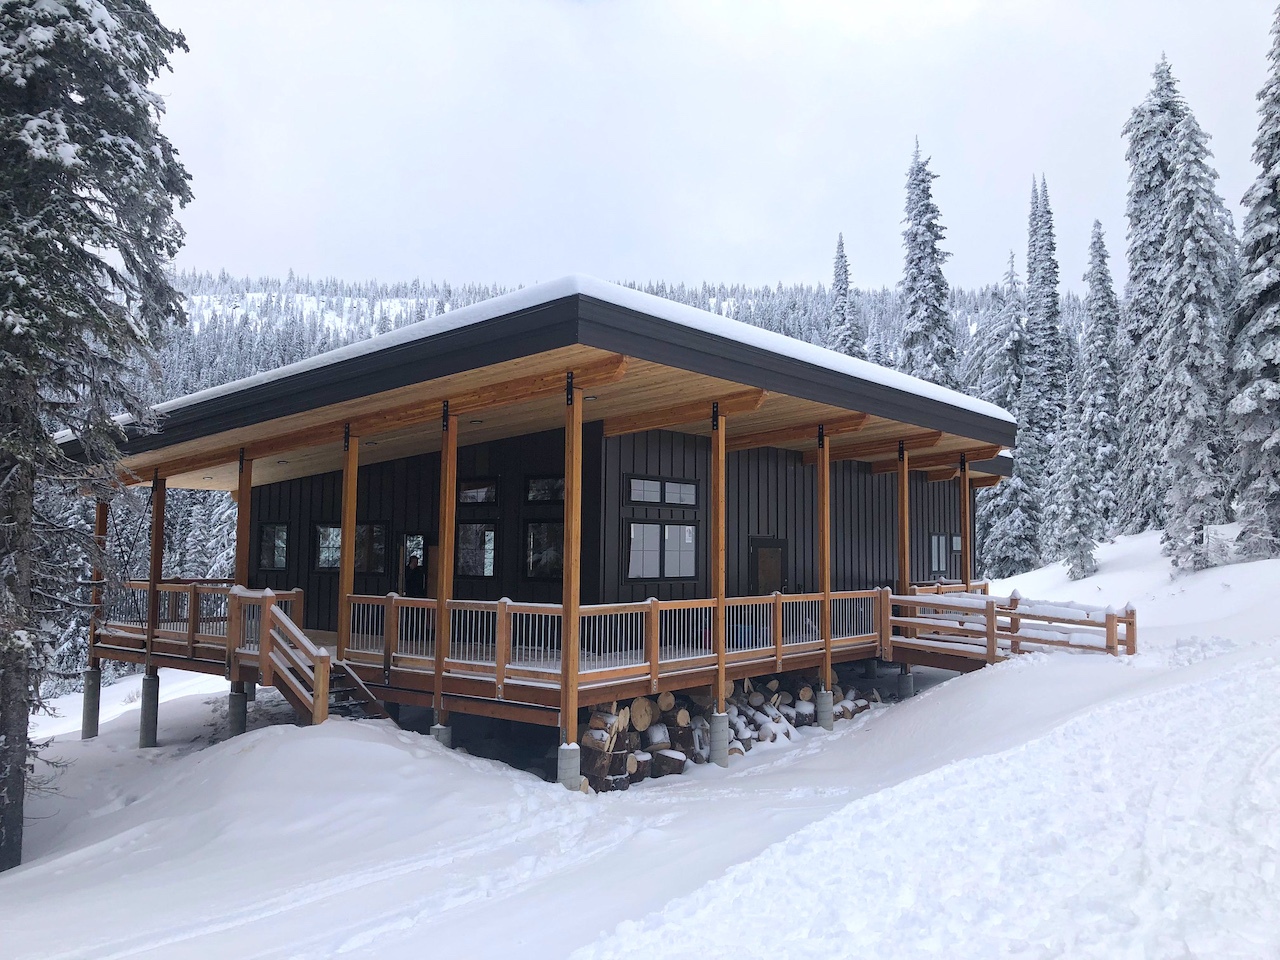 Meet-Constella-A-New-On-Mountain-Cabin-Experience-at-RED-new-clubhouse